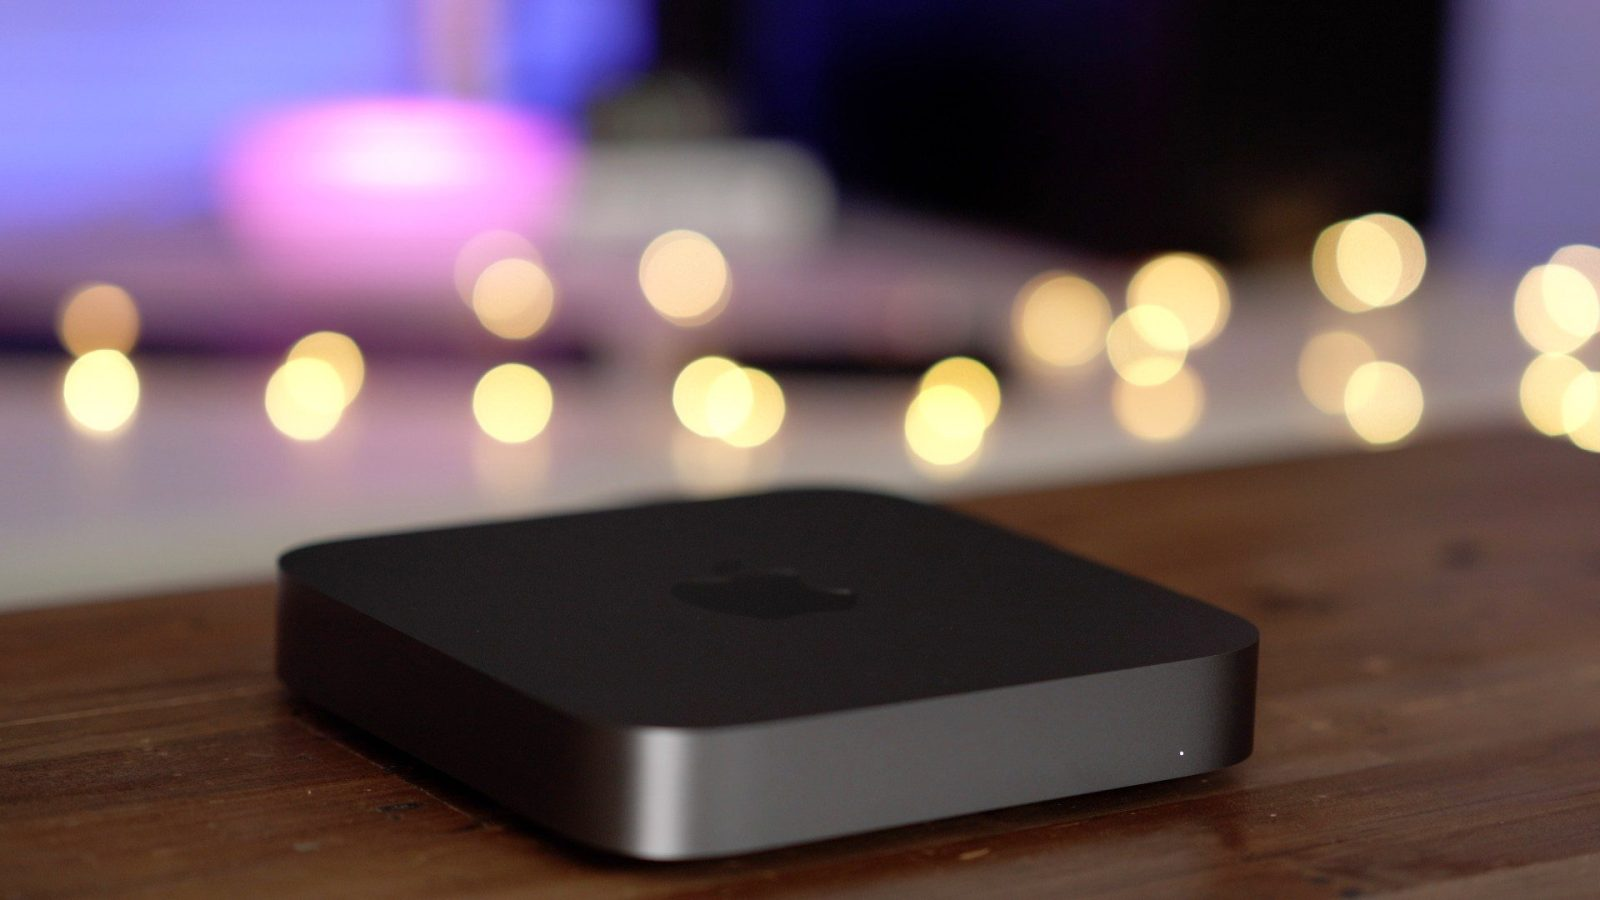 Mac mini hits Amazon all-time low at $699, Anker Summer Sale is now live from $10, more